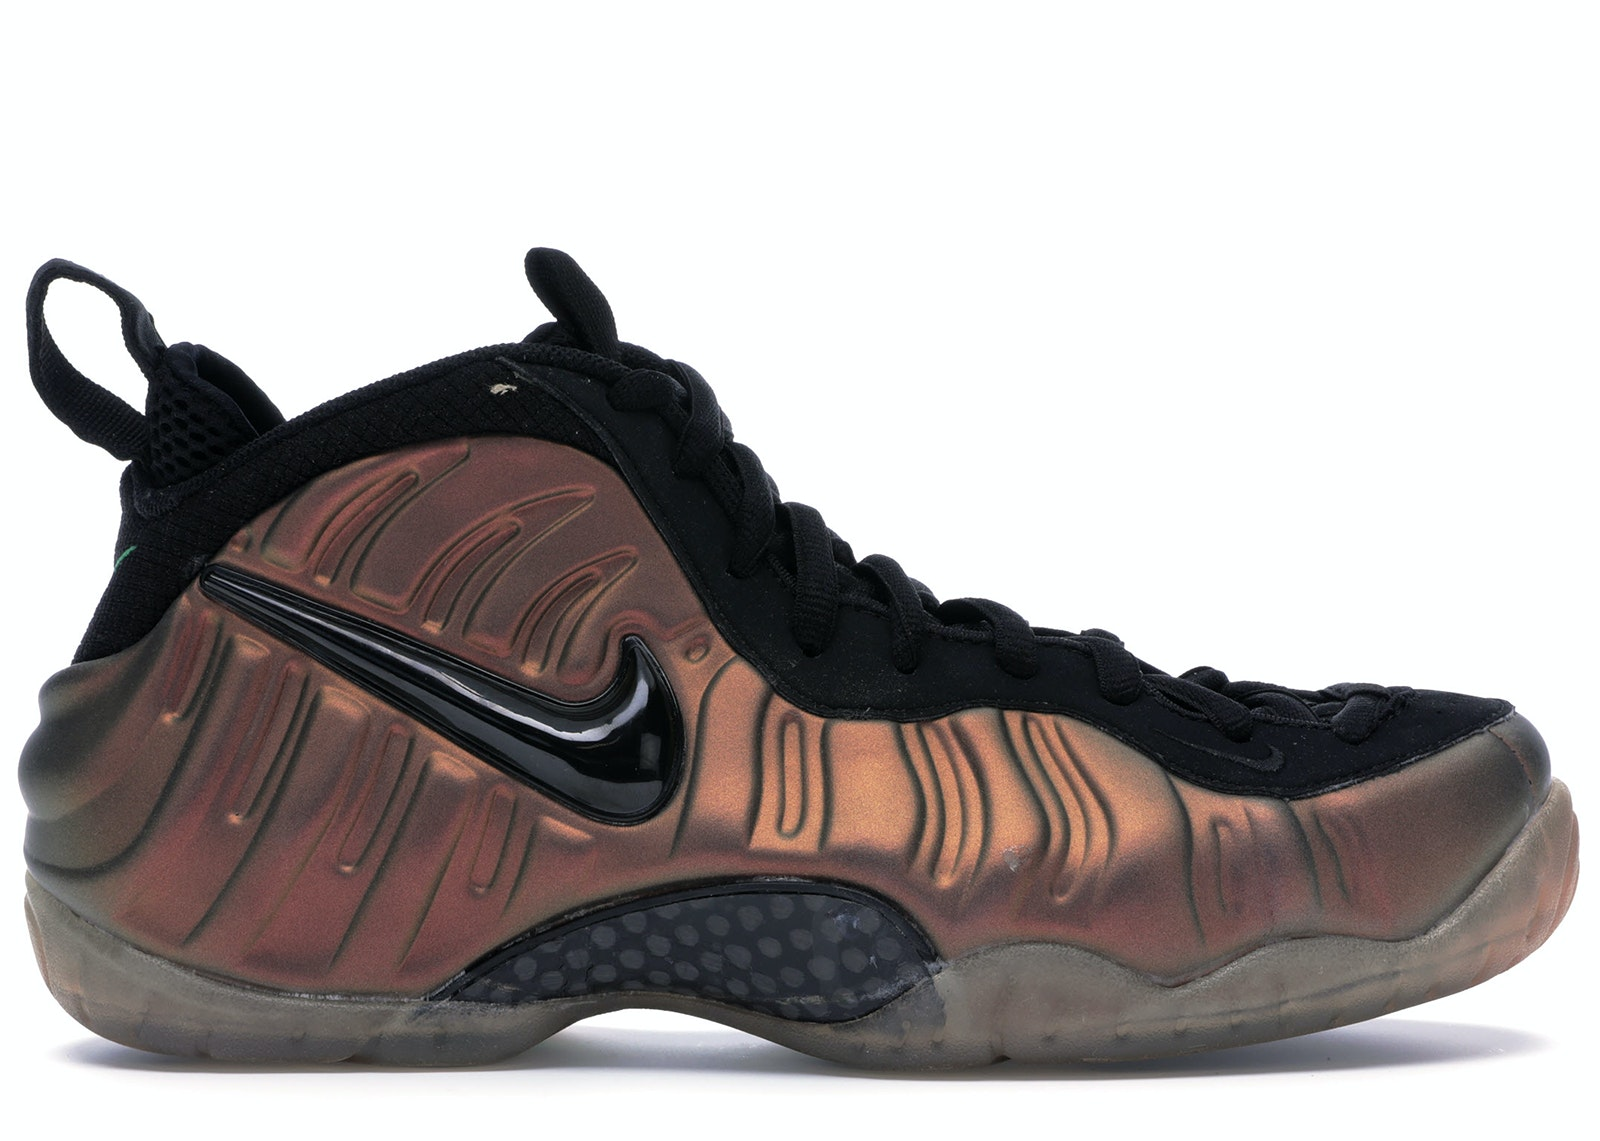 Nike Air Foamposite Pro Matrix Custom SBD